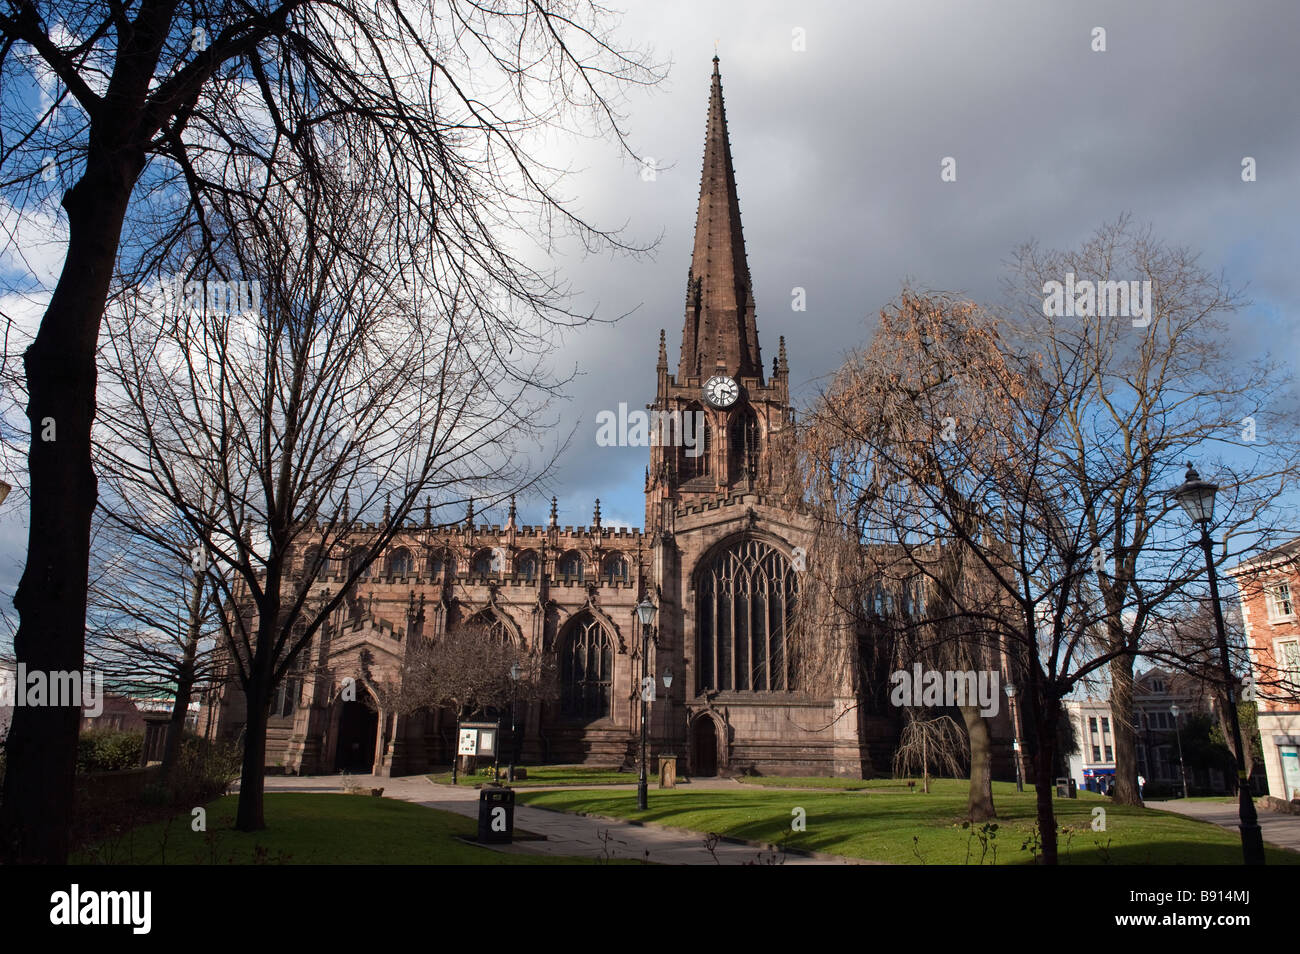 The Minster Church of 'All Saints', Rotherham 'South Yorkshire', England, 'Great Britain', - Stock Image